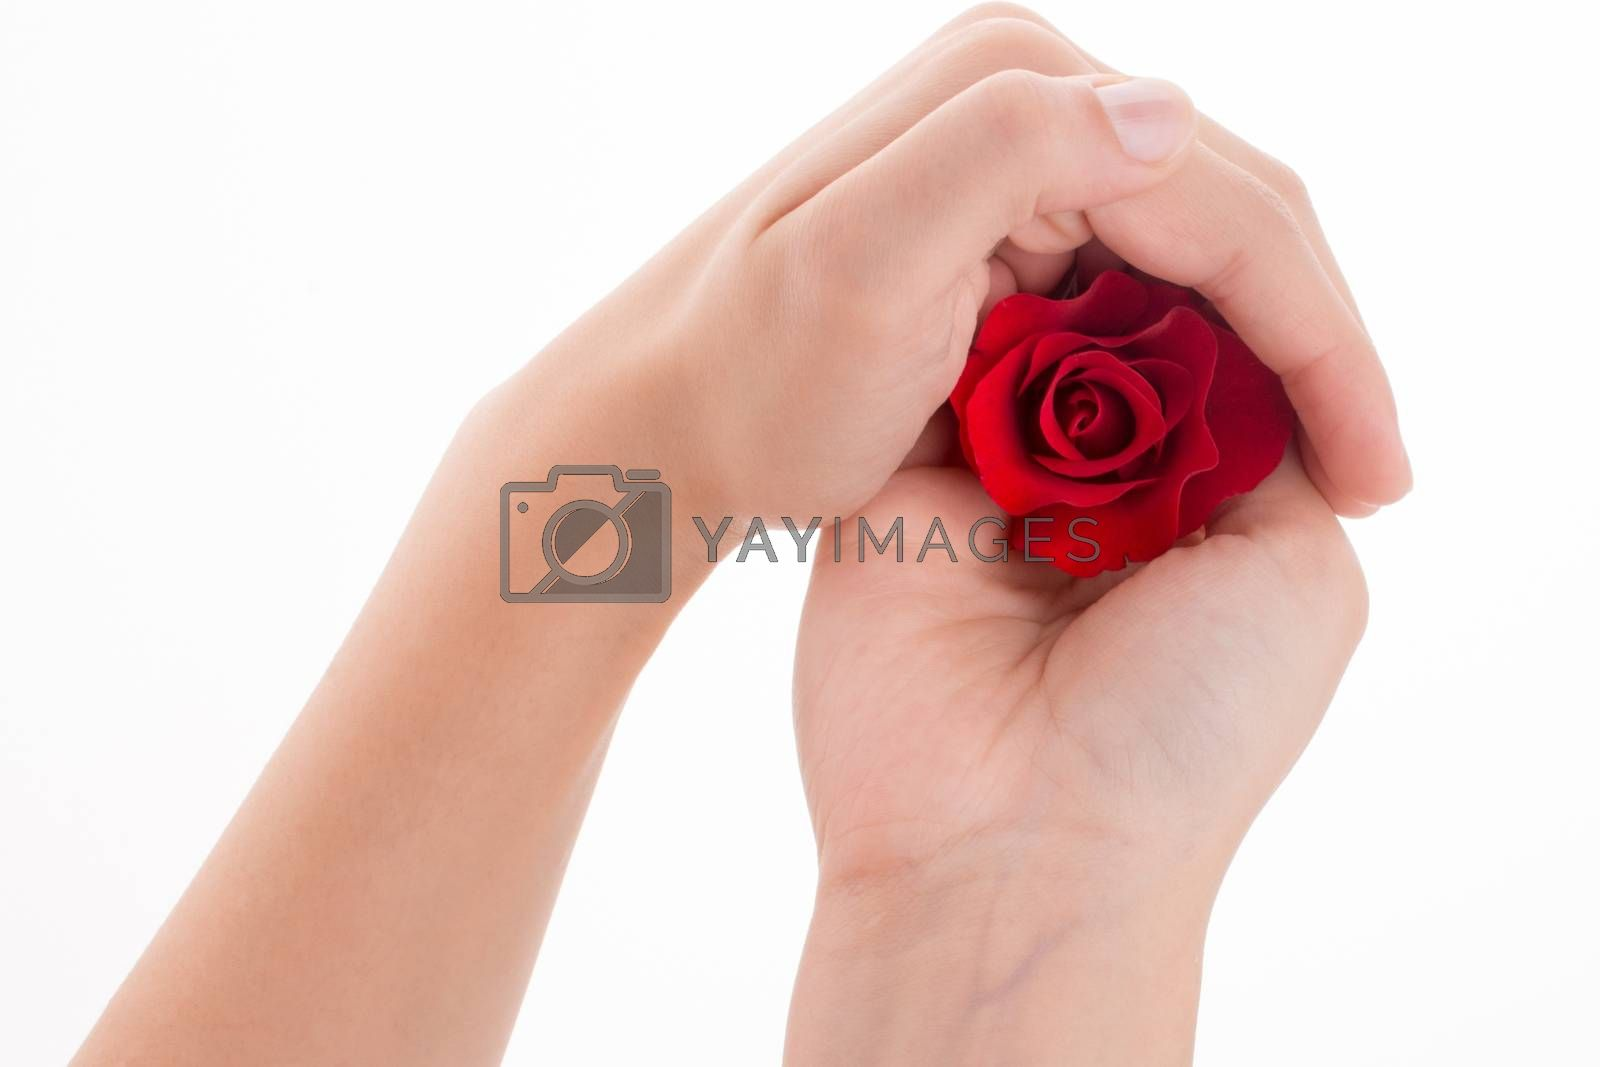 Hand holding a red rose on a white background